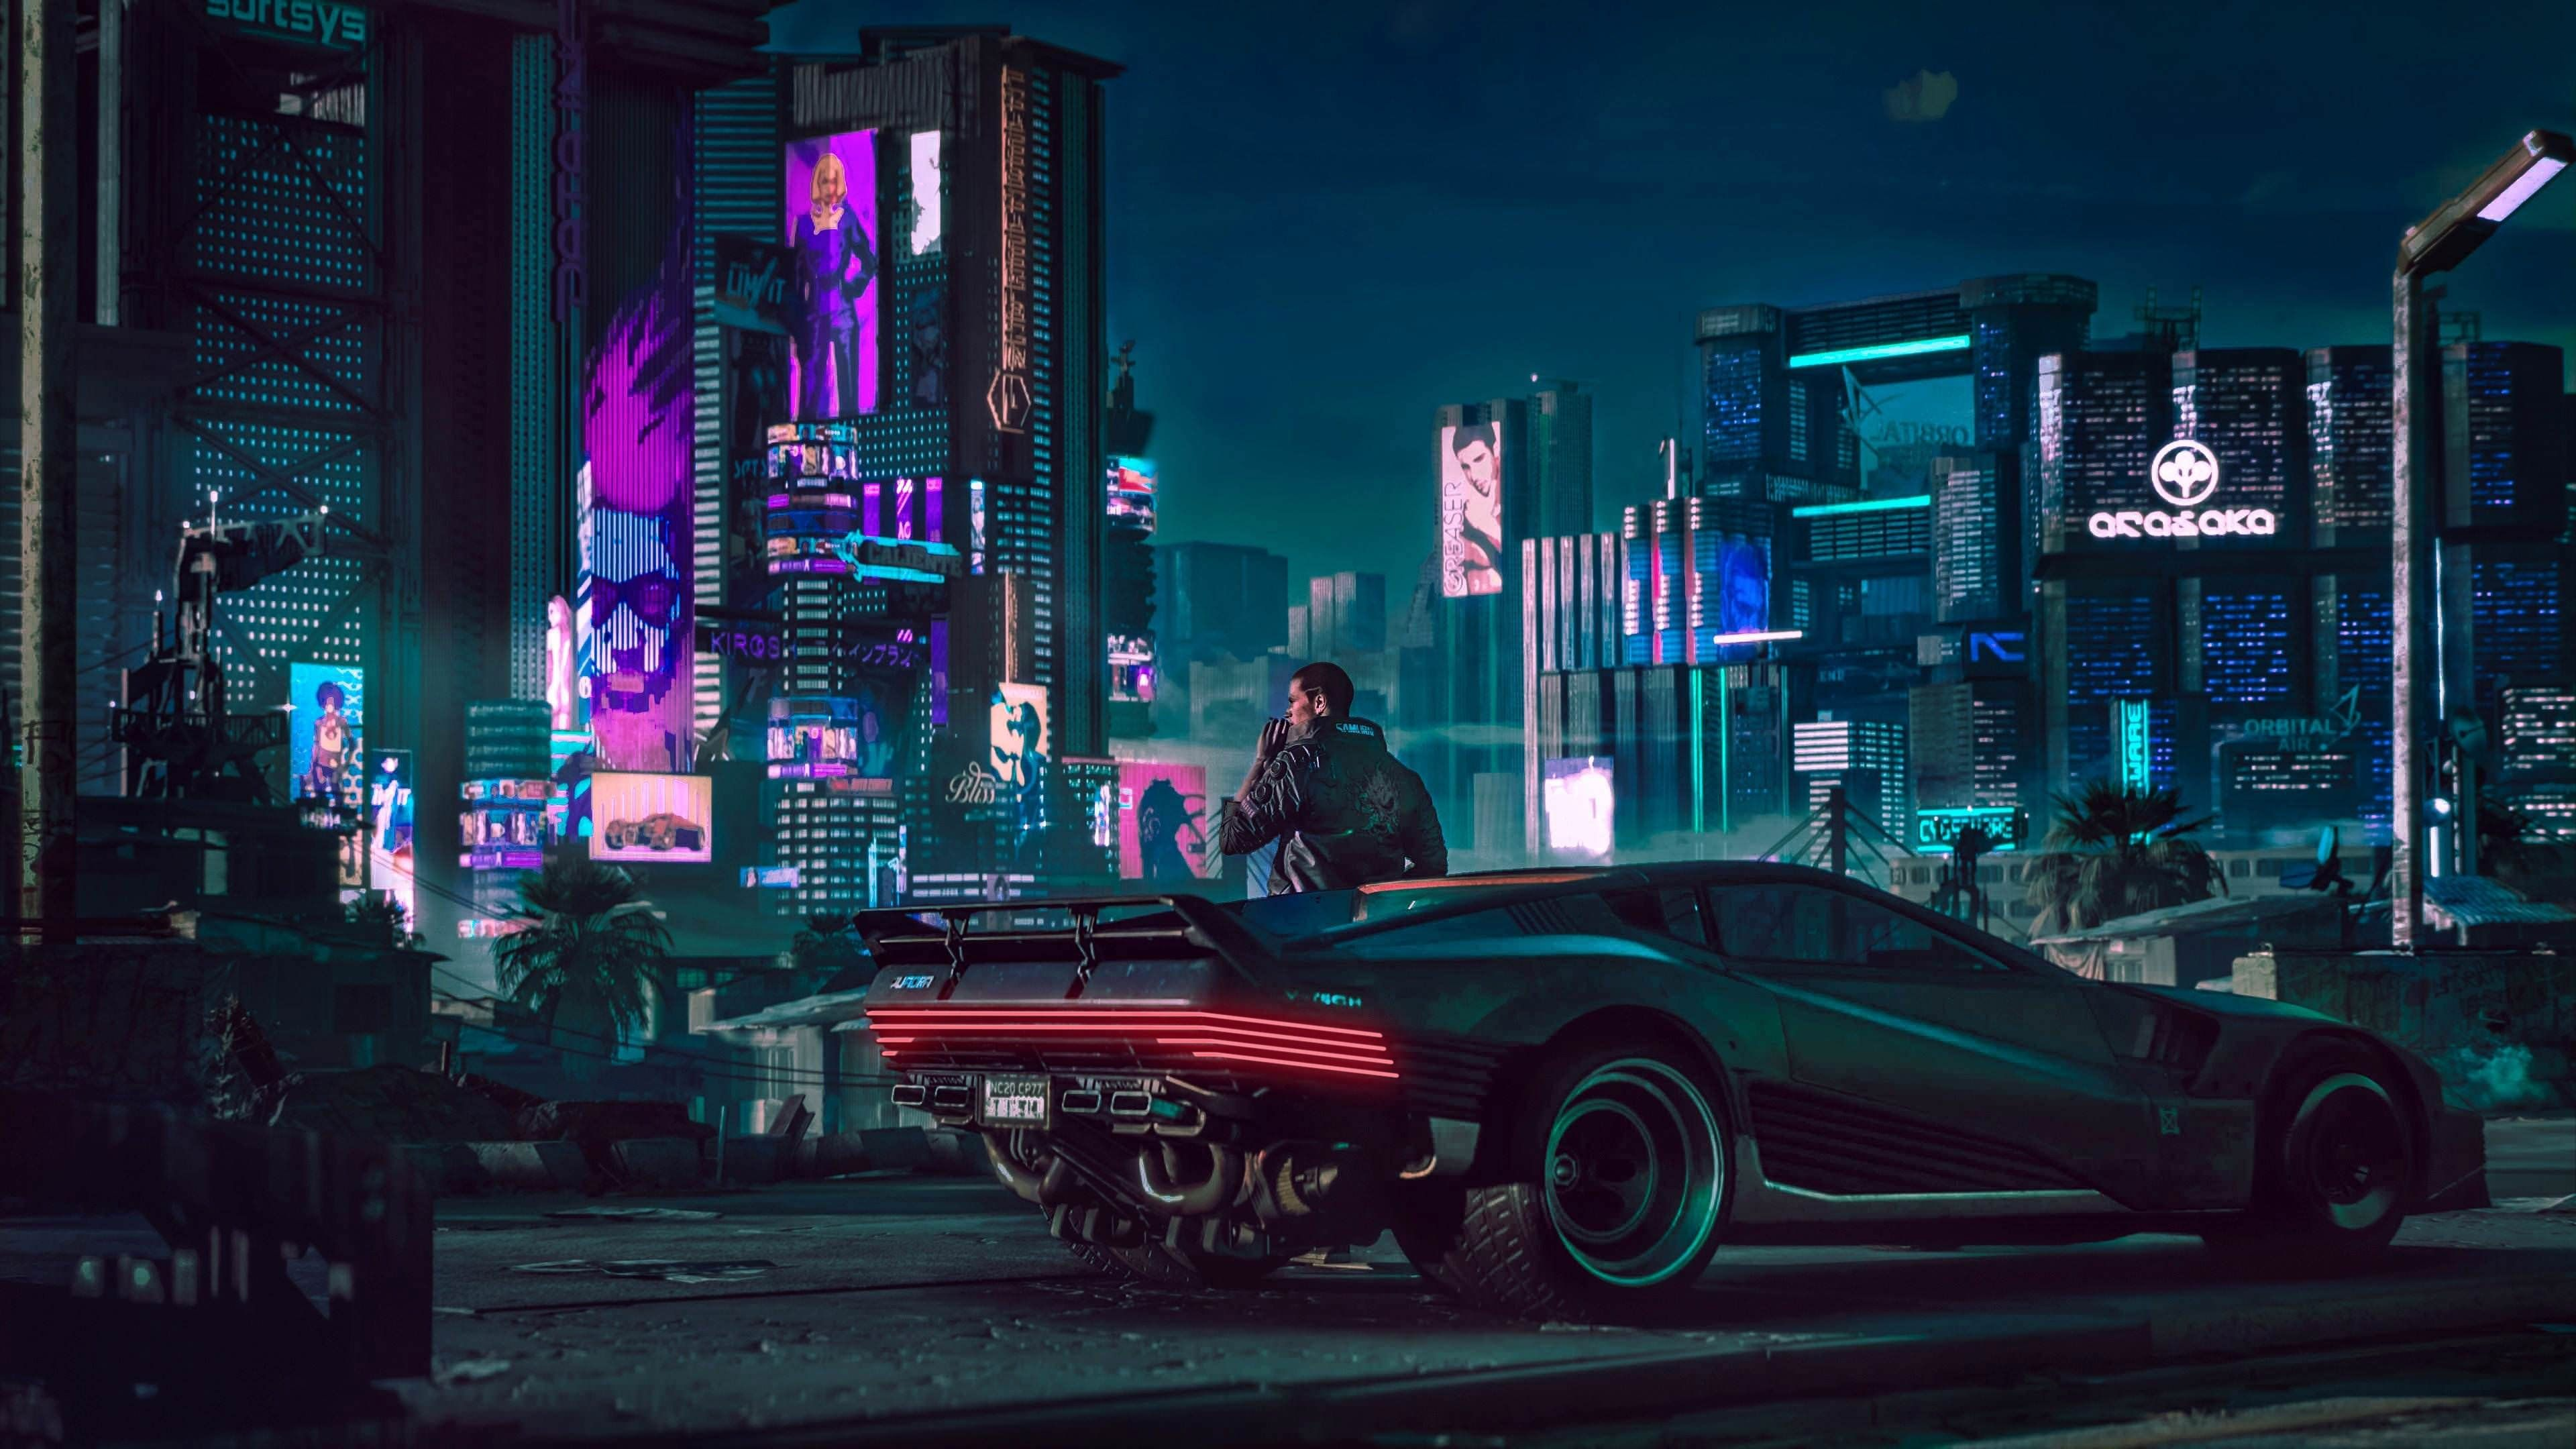 Cyberpunk Car 4k Wallpaper Futuristic City Cyberpunk 2077 Digital Wallpaper